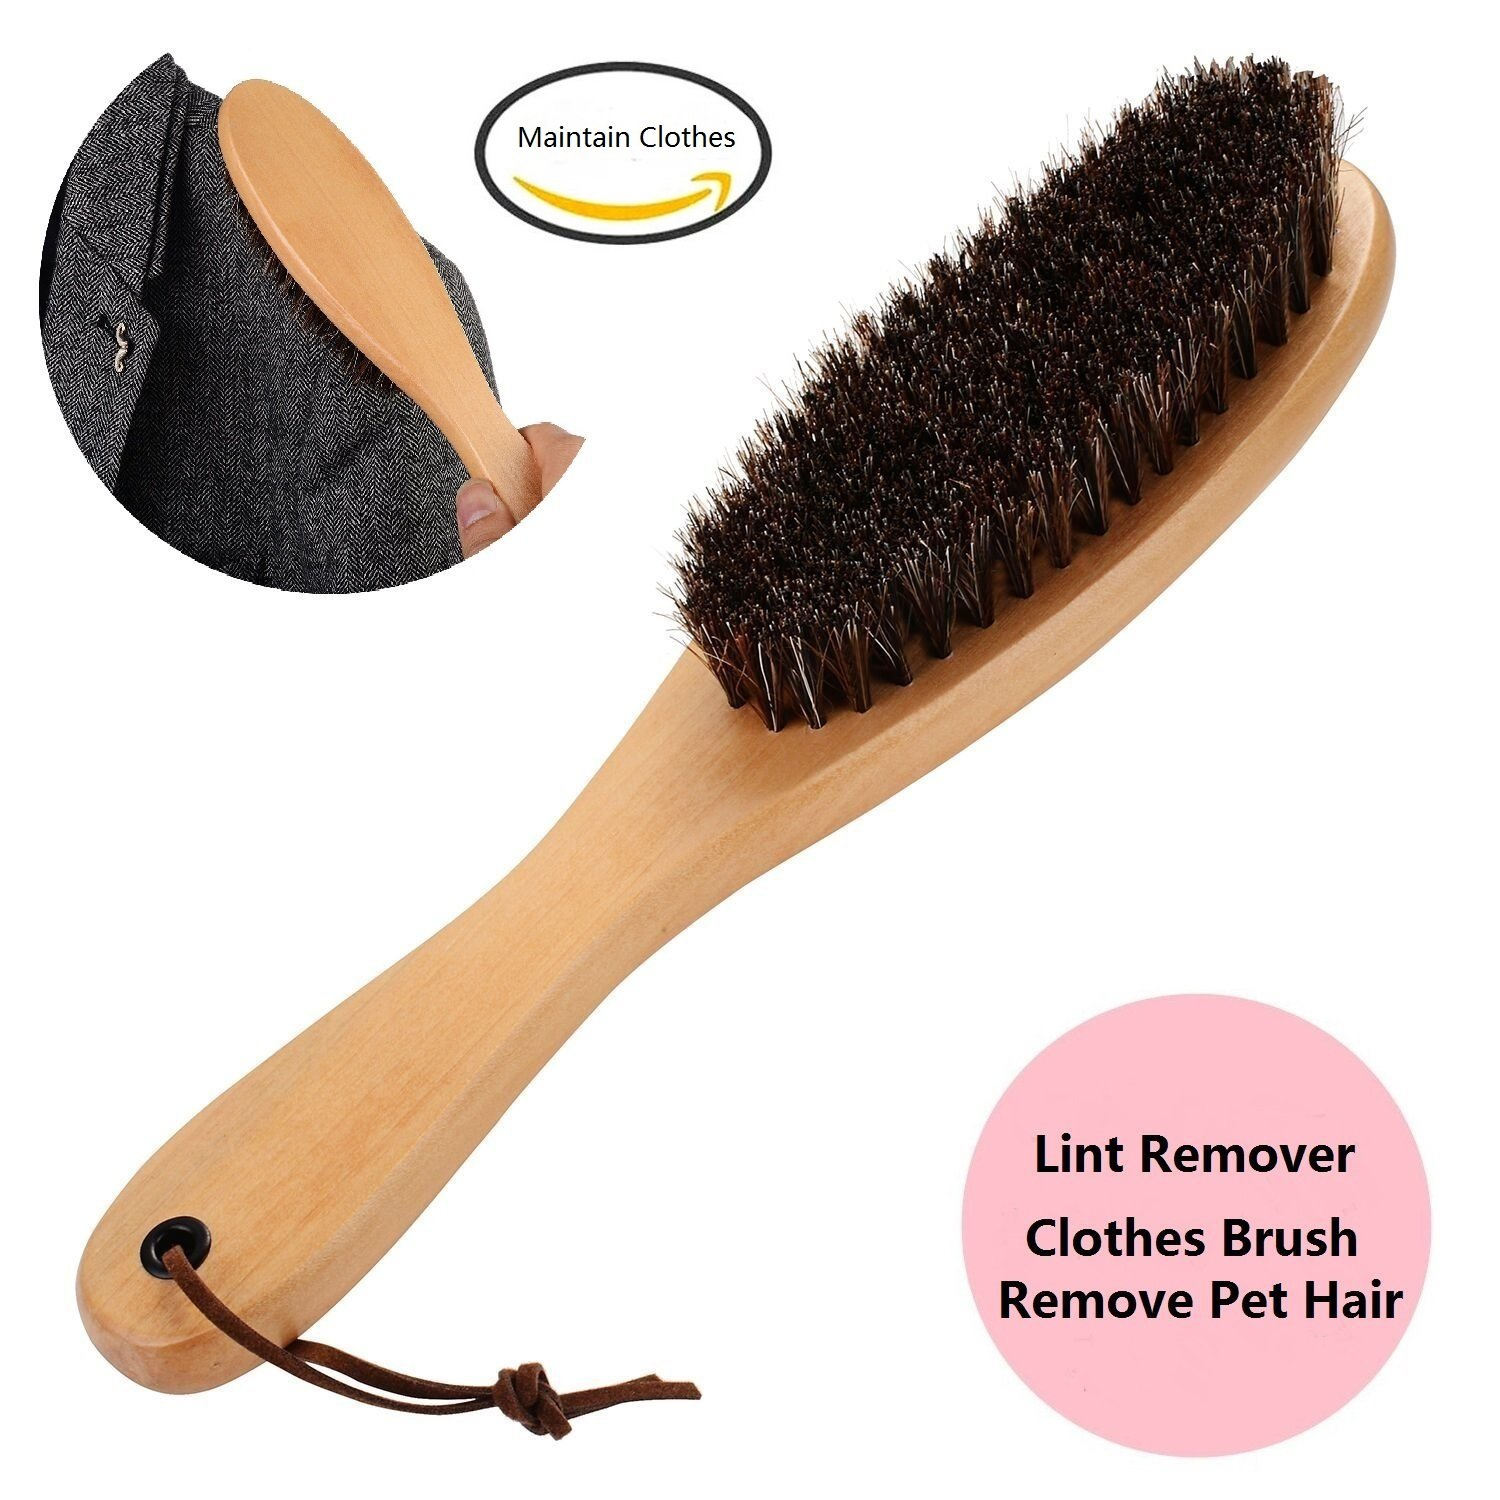 Clothes Brush Coat Brush Suit Brush Lint Brush for Clothes with Genuine Soft Horse Mane for Men Suits and Furniture Jacket